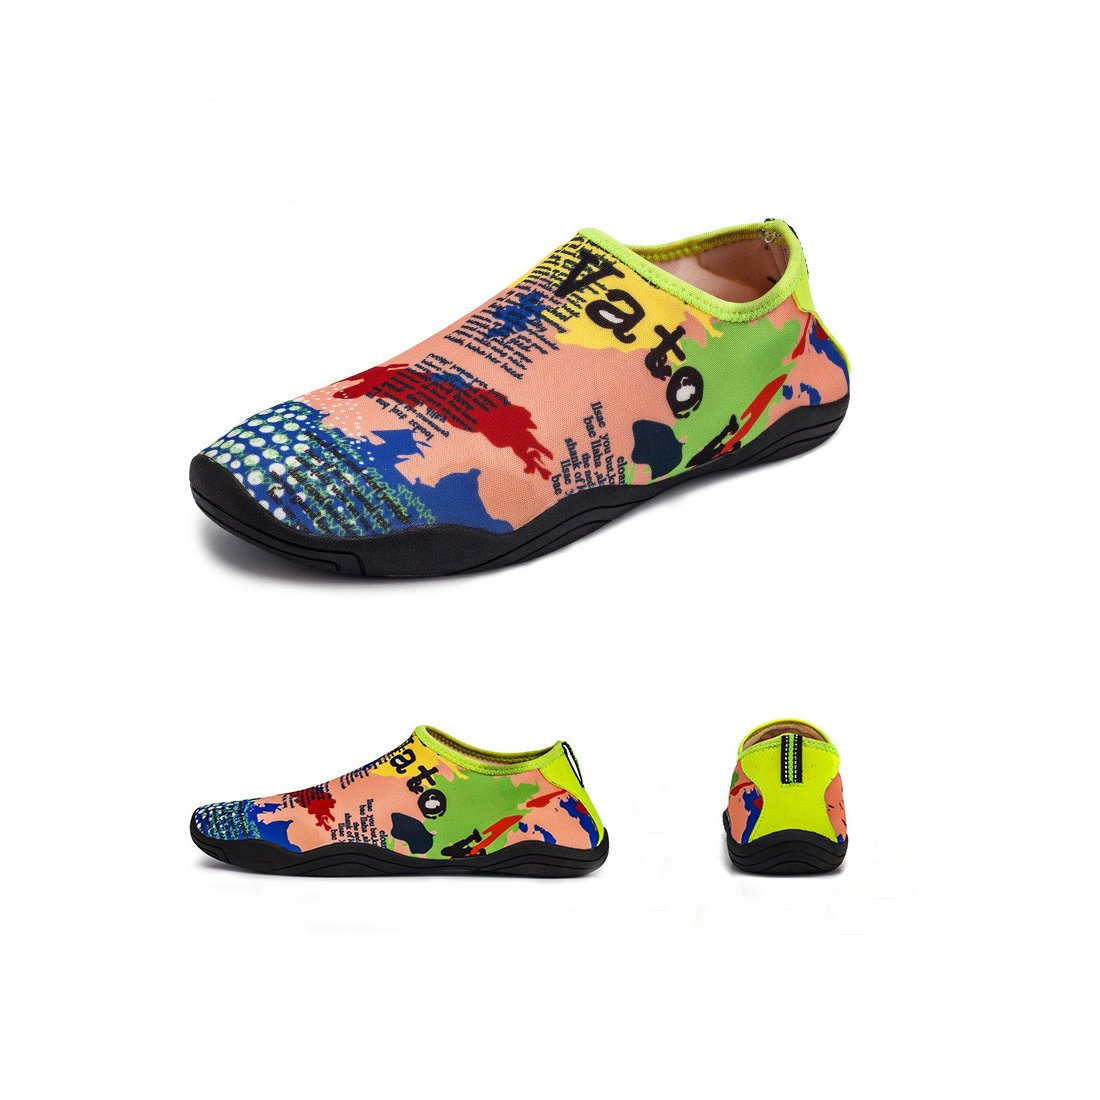 Zegoo Latest Breathable Water Skin Shoes Surf Shoes